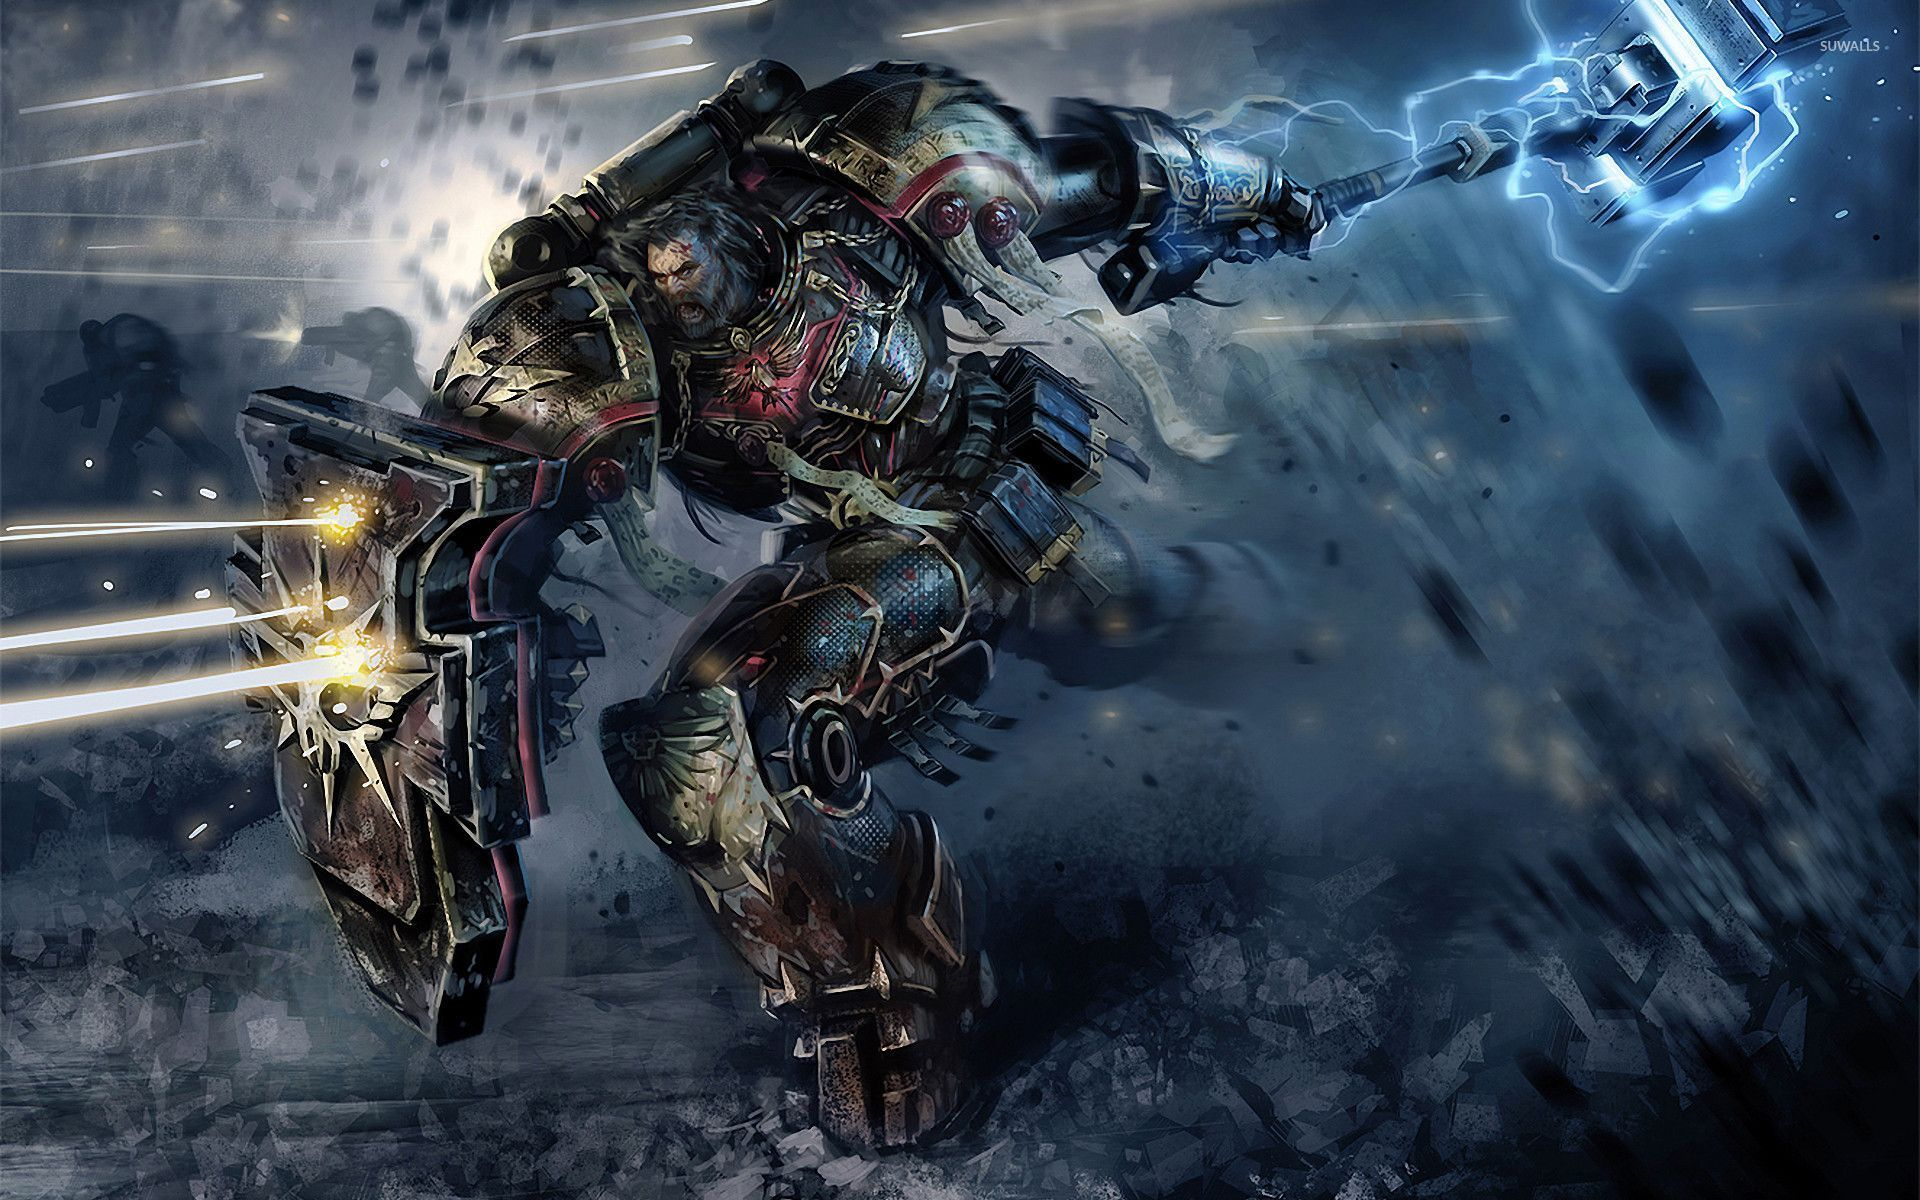 warhammer 40k wallpaper 1920x1200 wallpapersafari